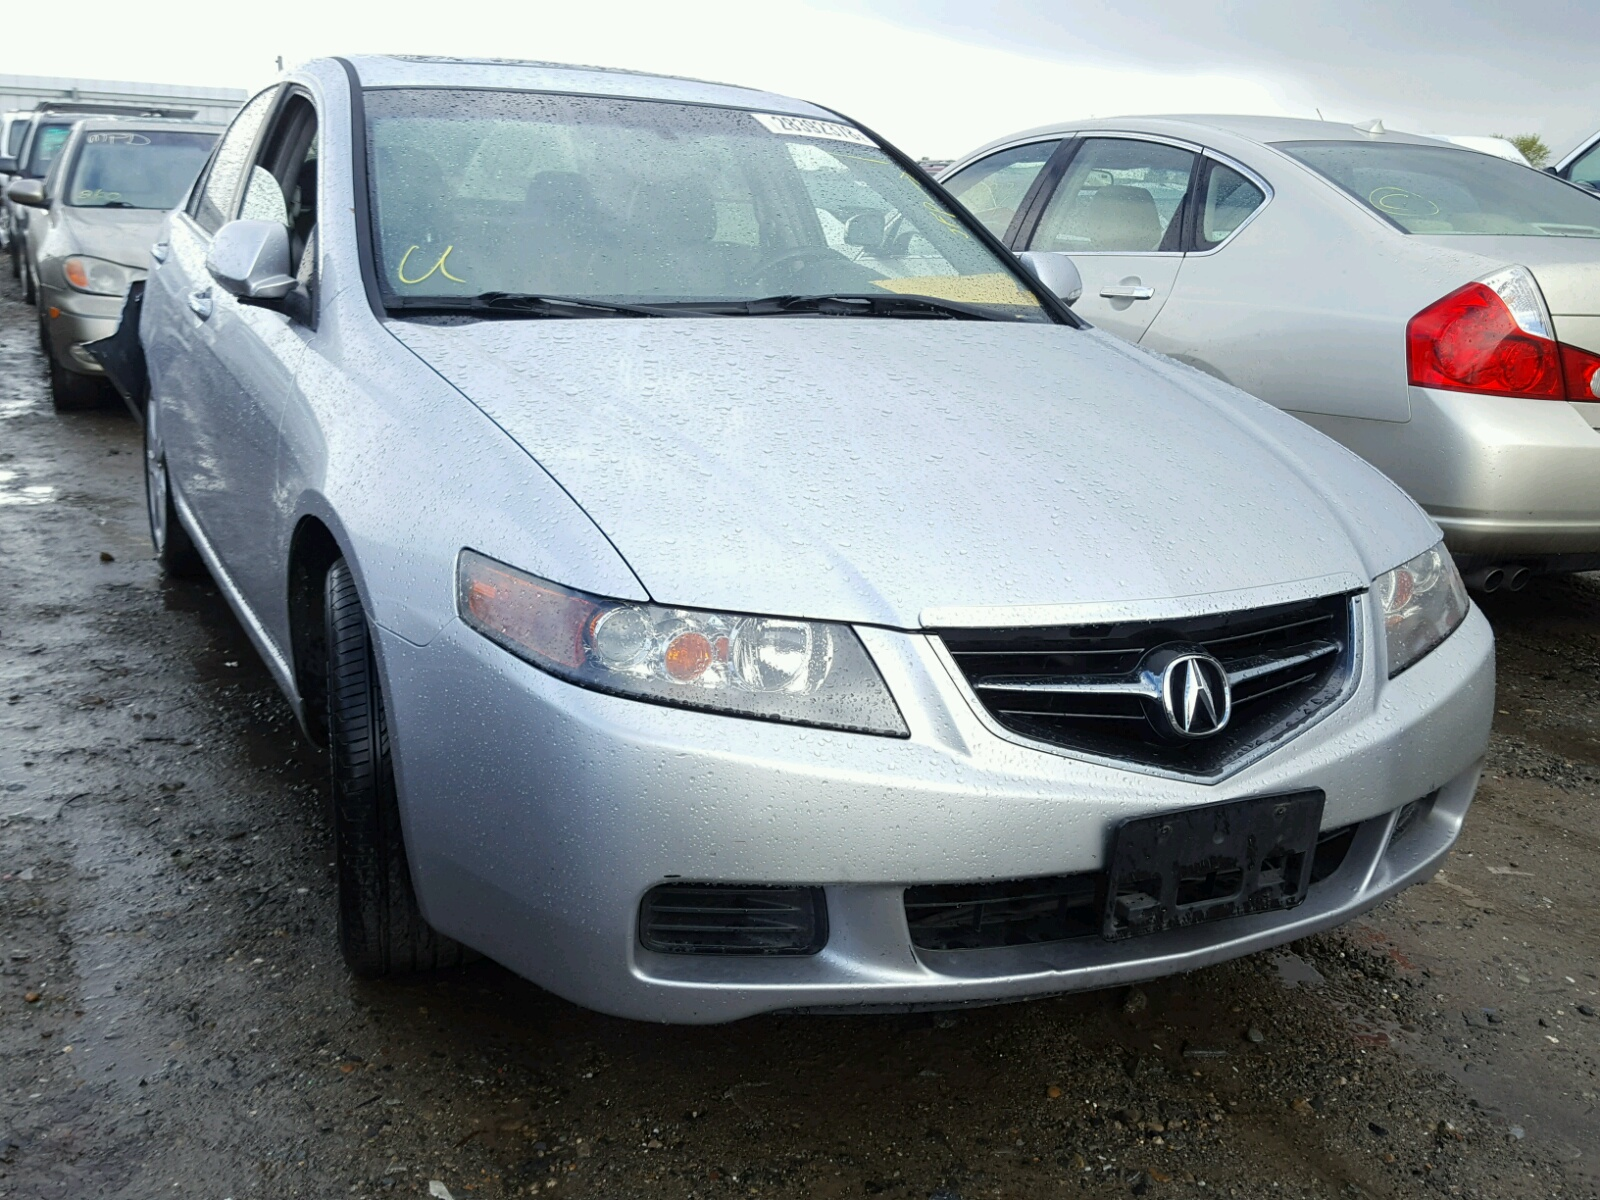 JHCLXC SILVER ACURA TSX On Sale In CA SACRAMENTO - Acura tsx 2004 for sale